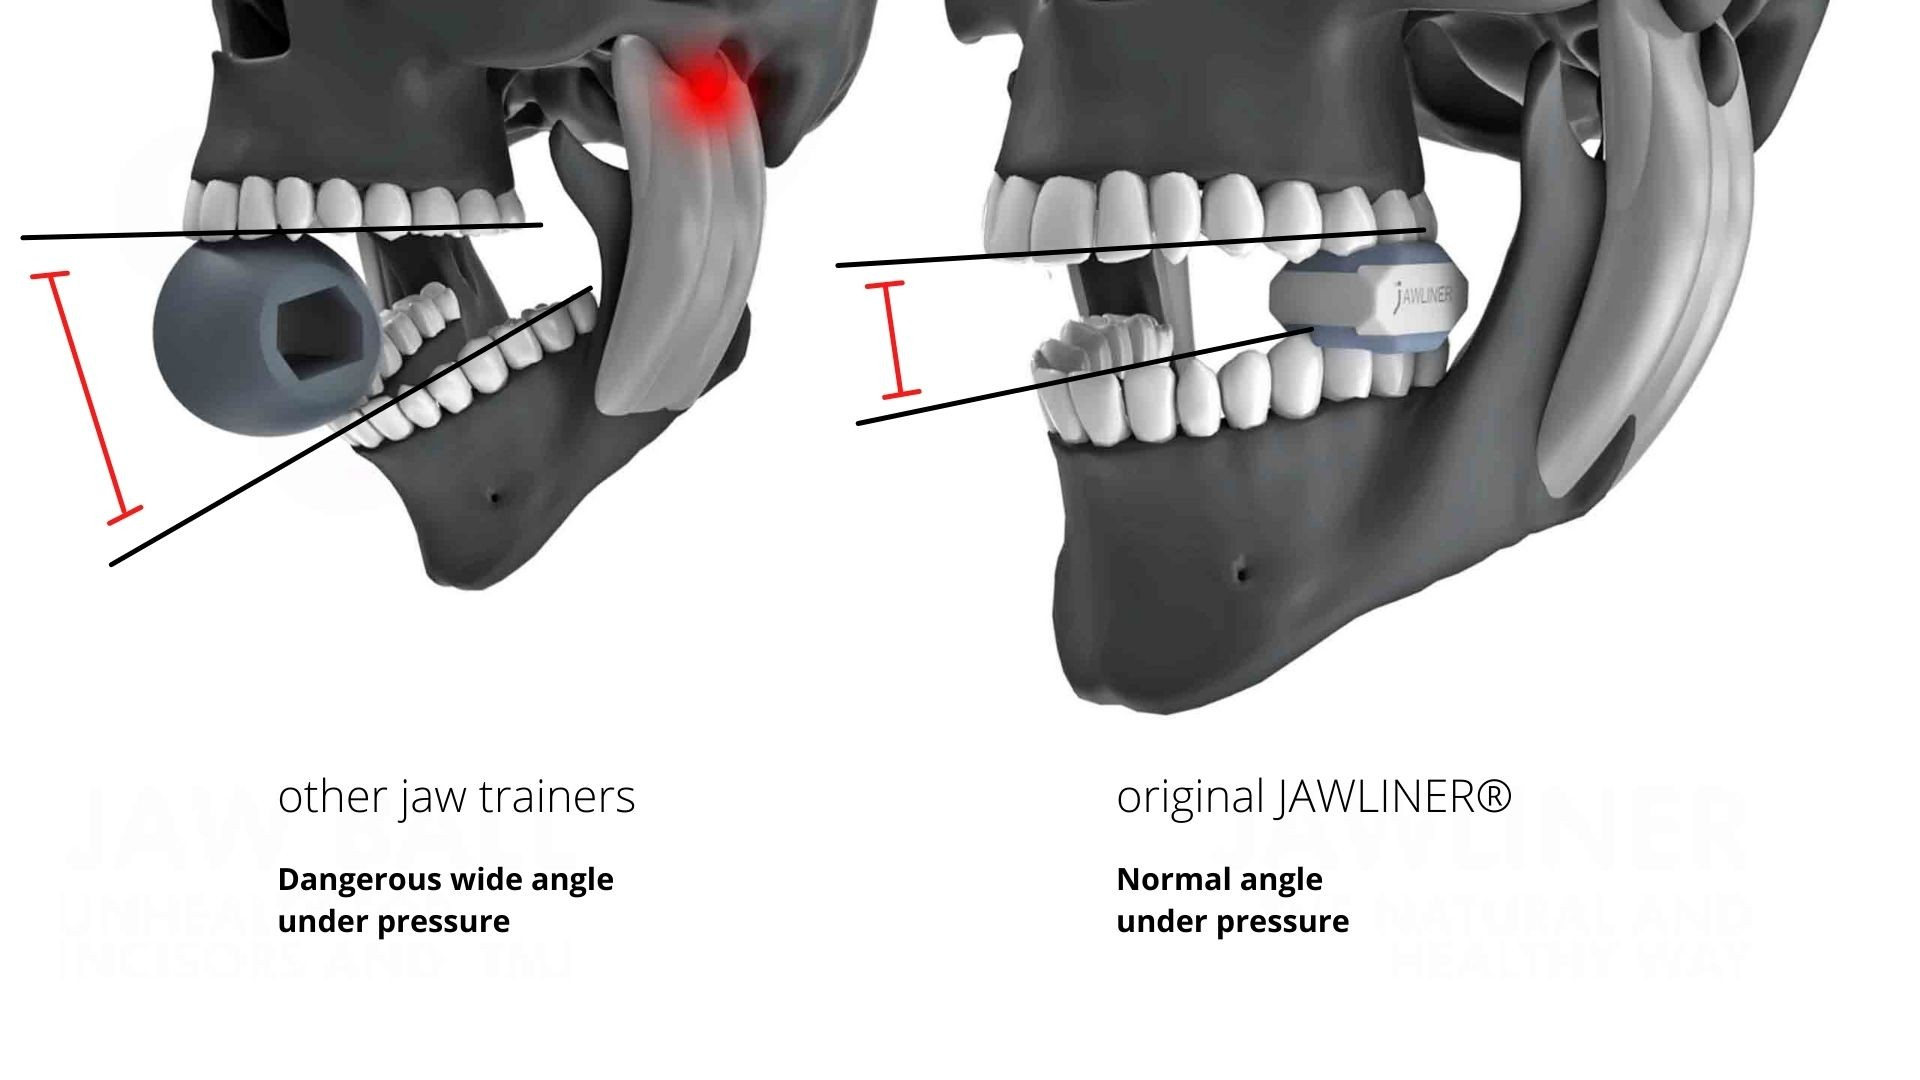 the-jaw-trainer-jawliner-vs-the-unhealthy-jaw-trainer-leik-jawzrsize